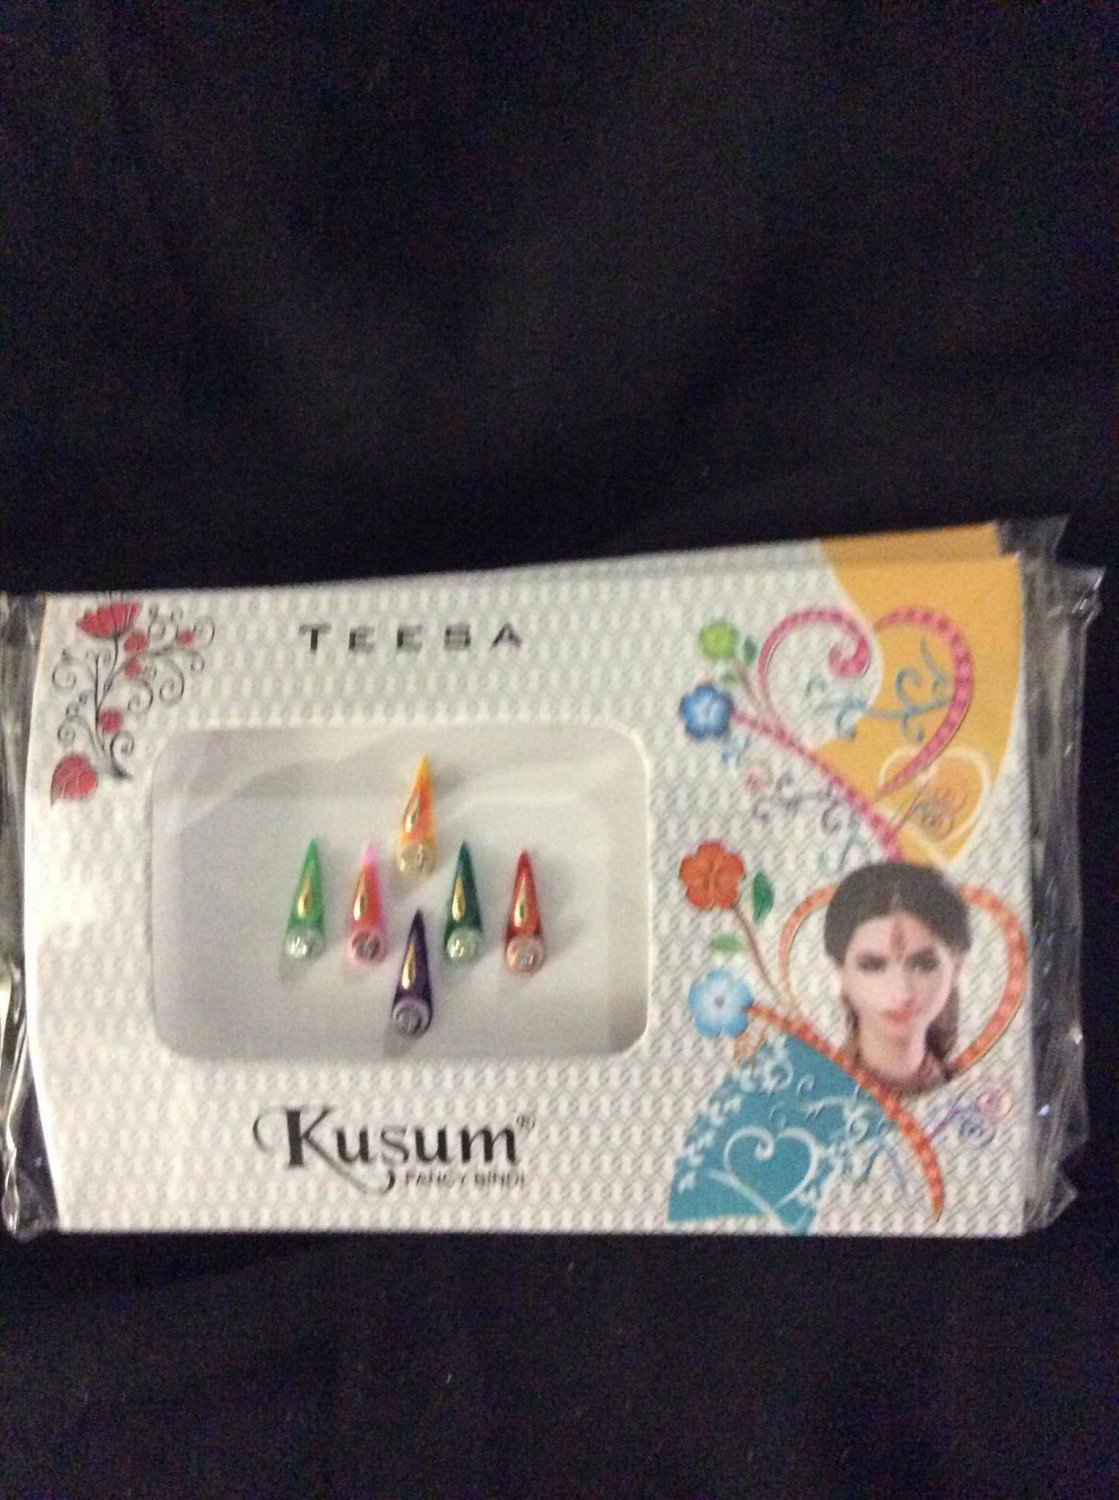 Free Shipping 5 Assorted pack Bindi Body or Henna decorations Bridal Tika Indian Body Decorations